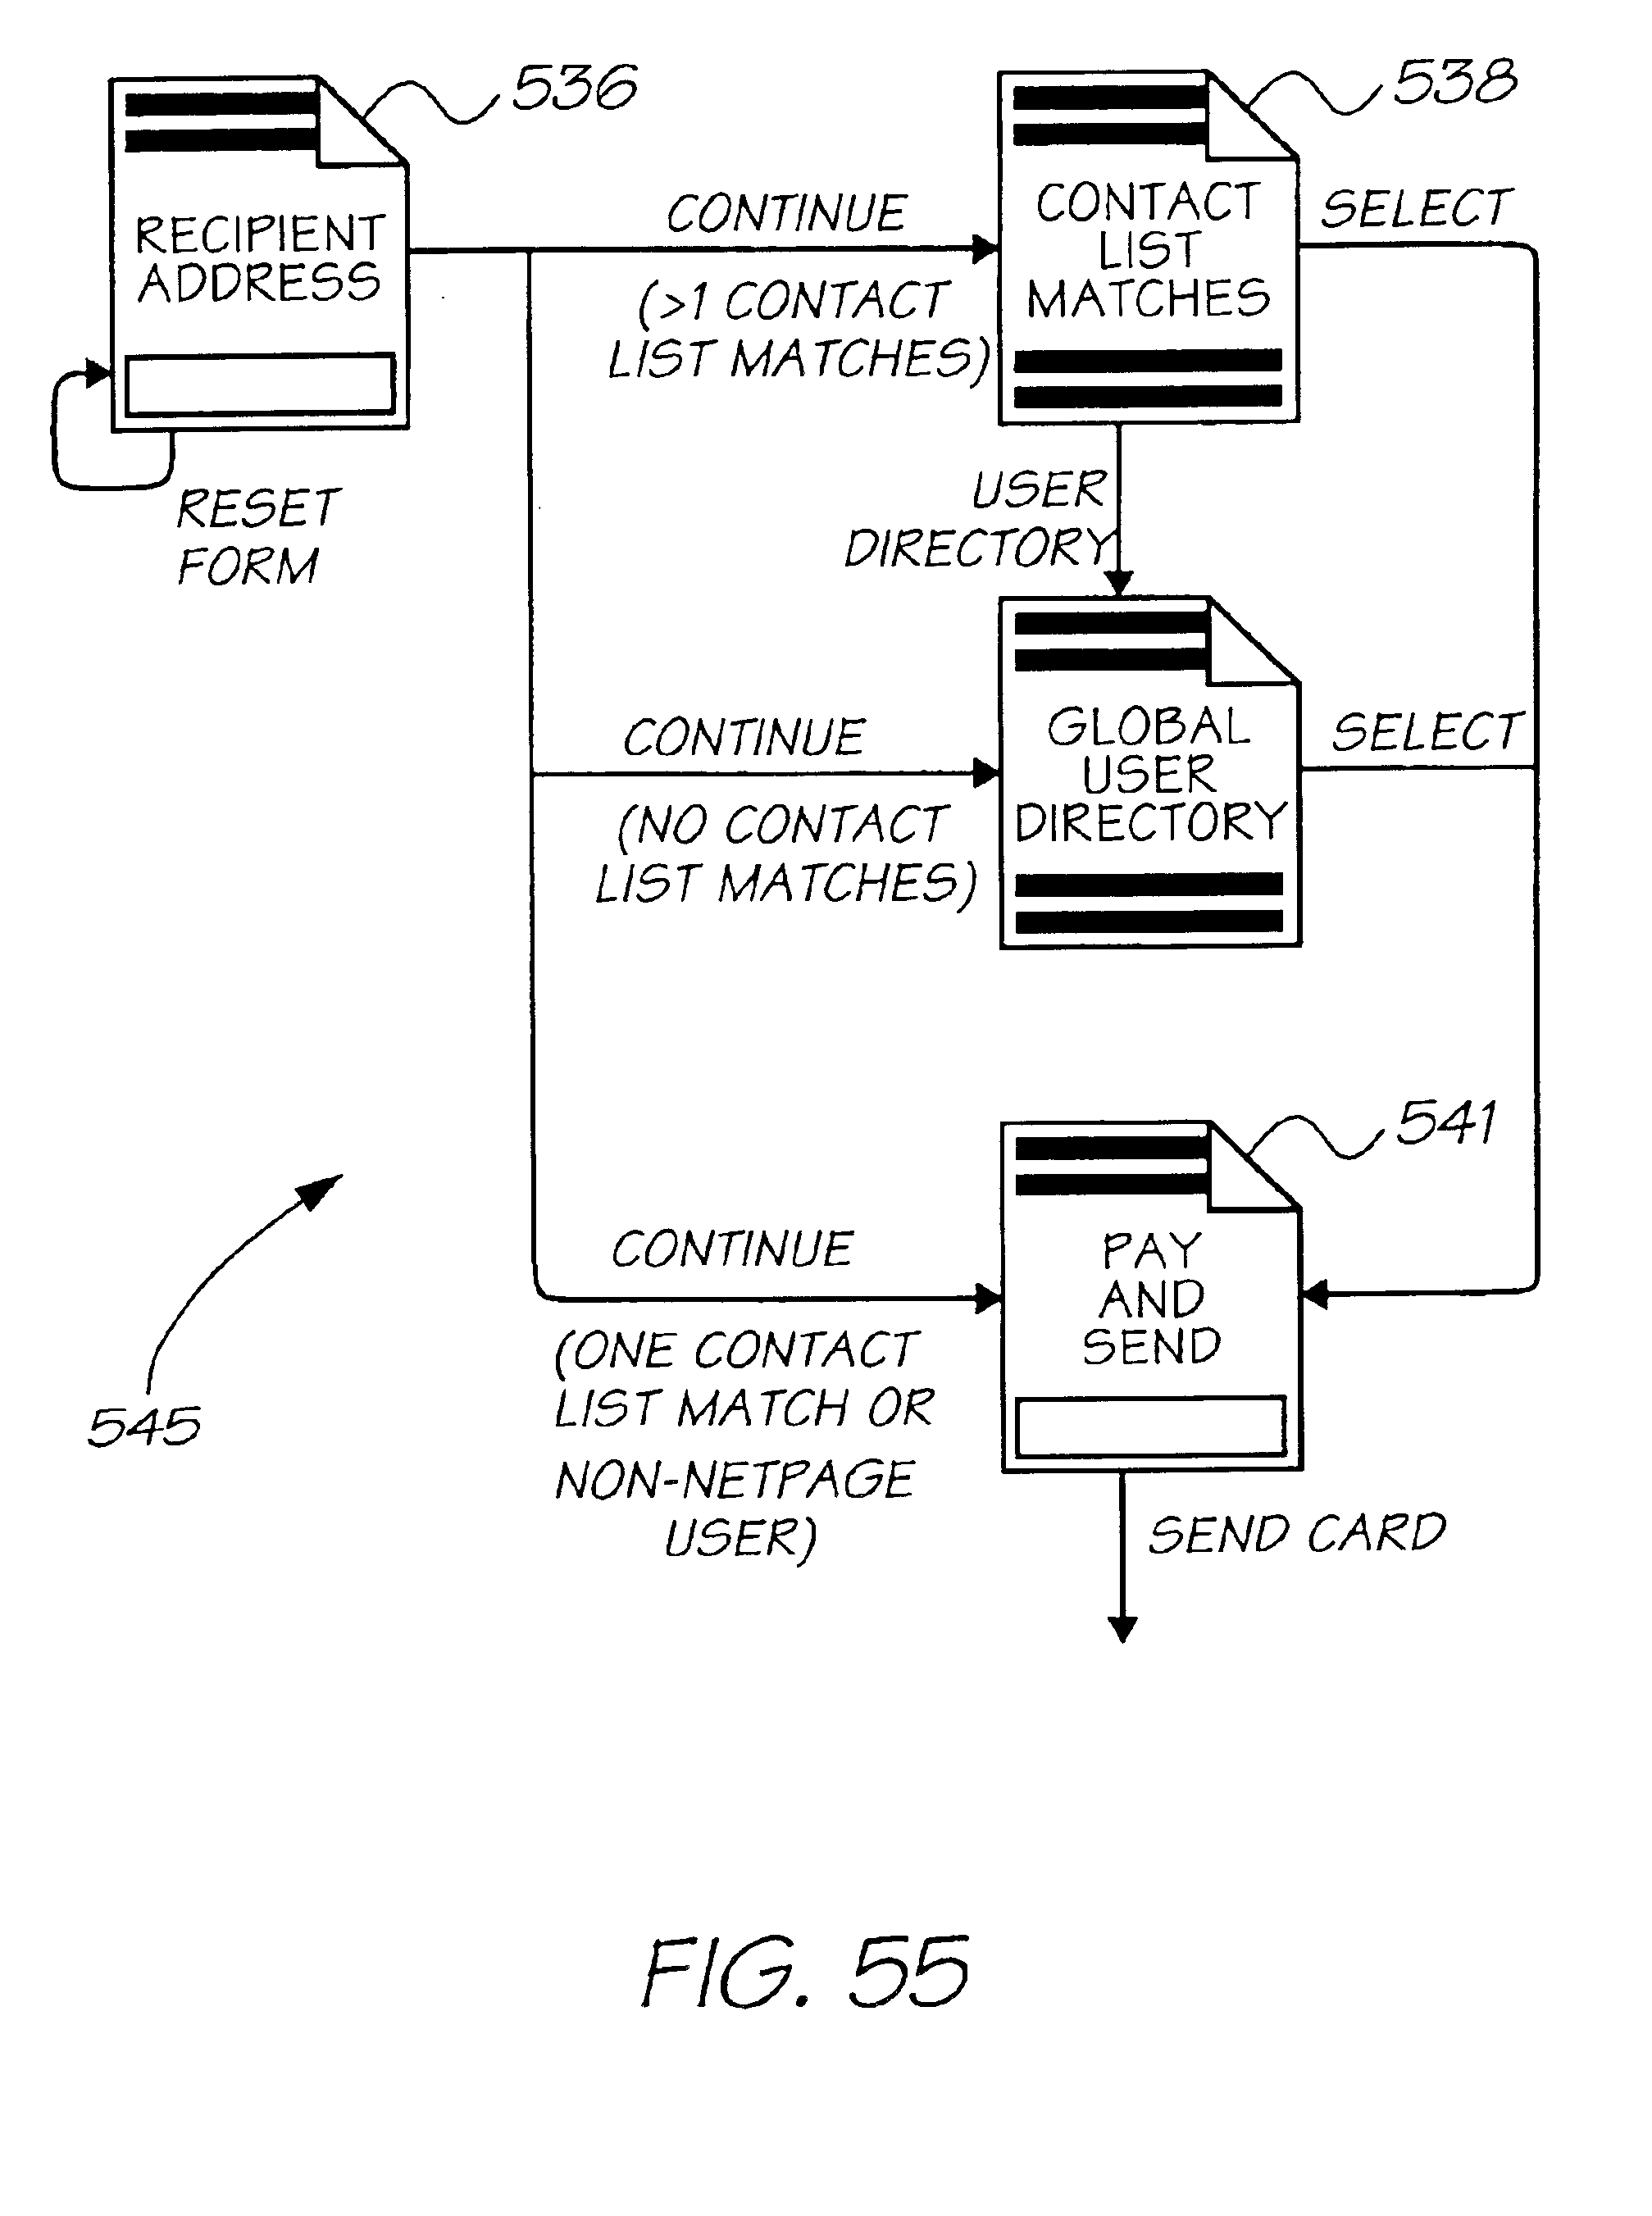 US6980318B1 - Method and system for delivery of a greeting